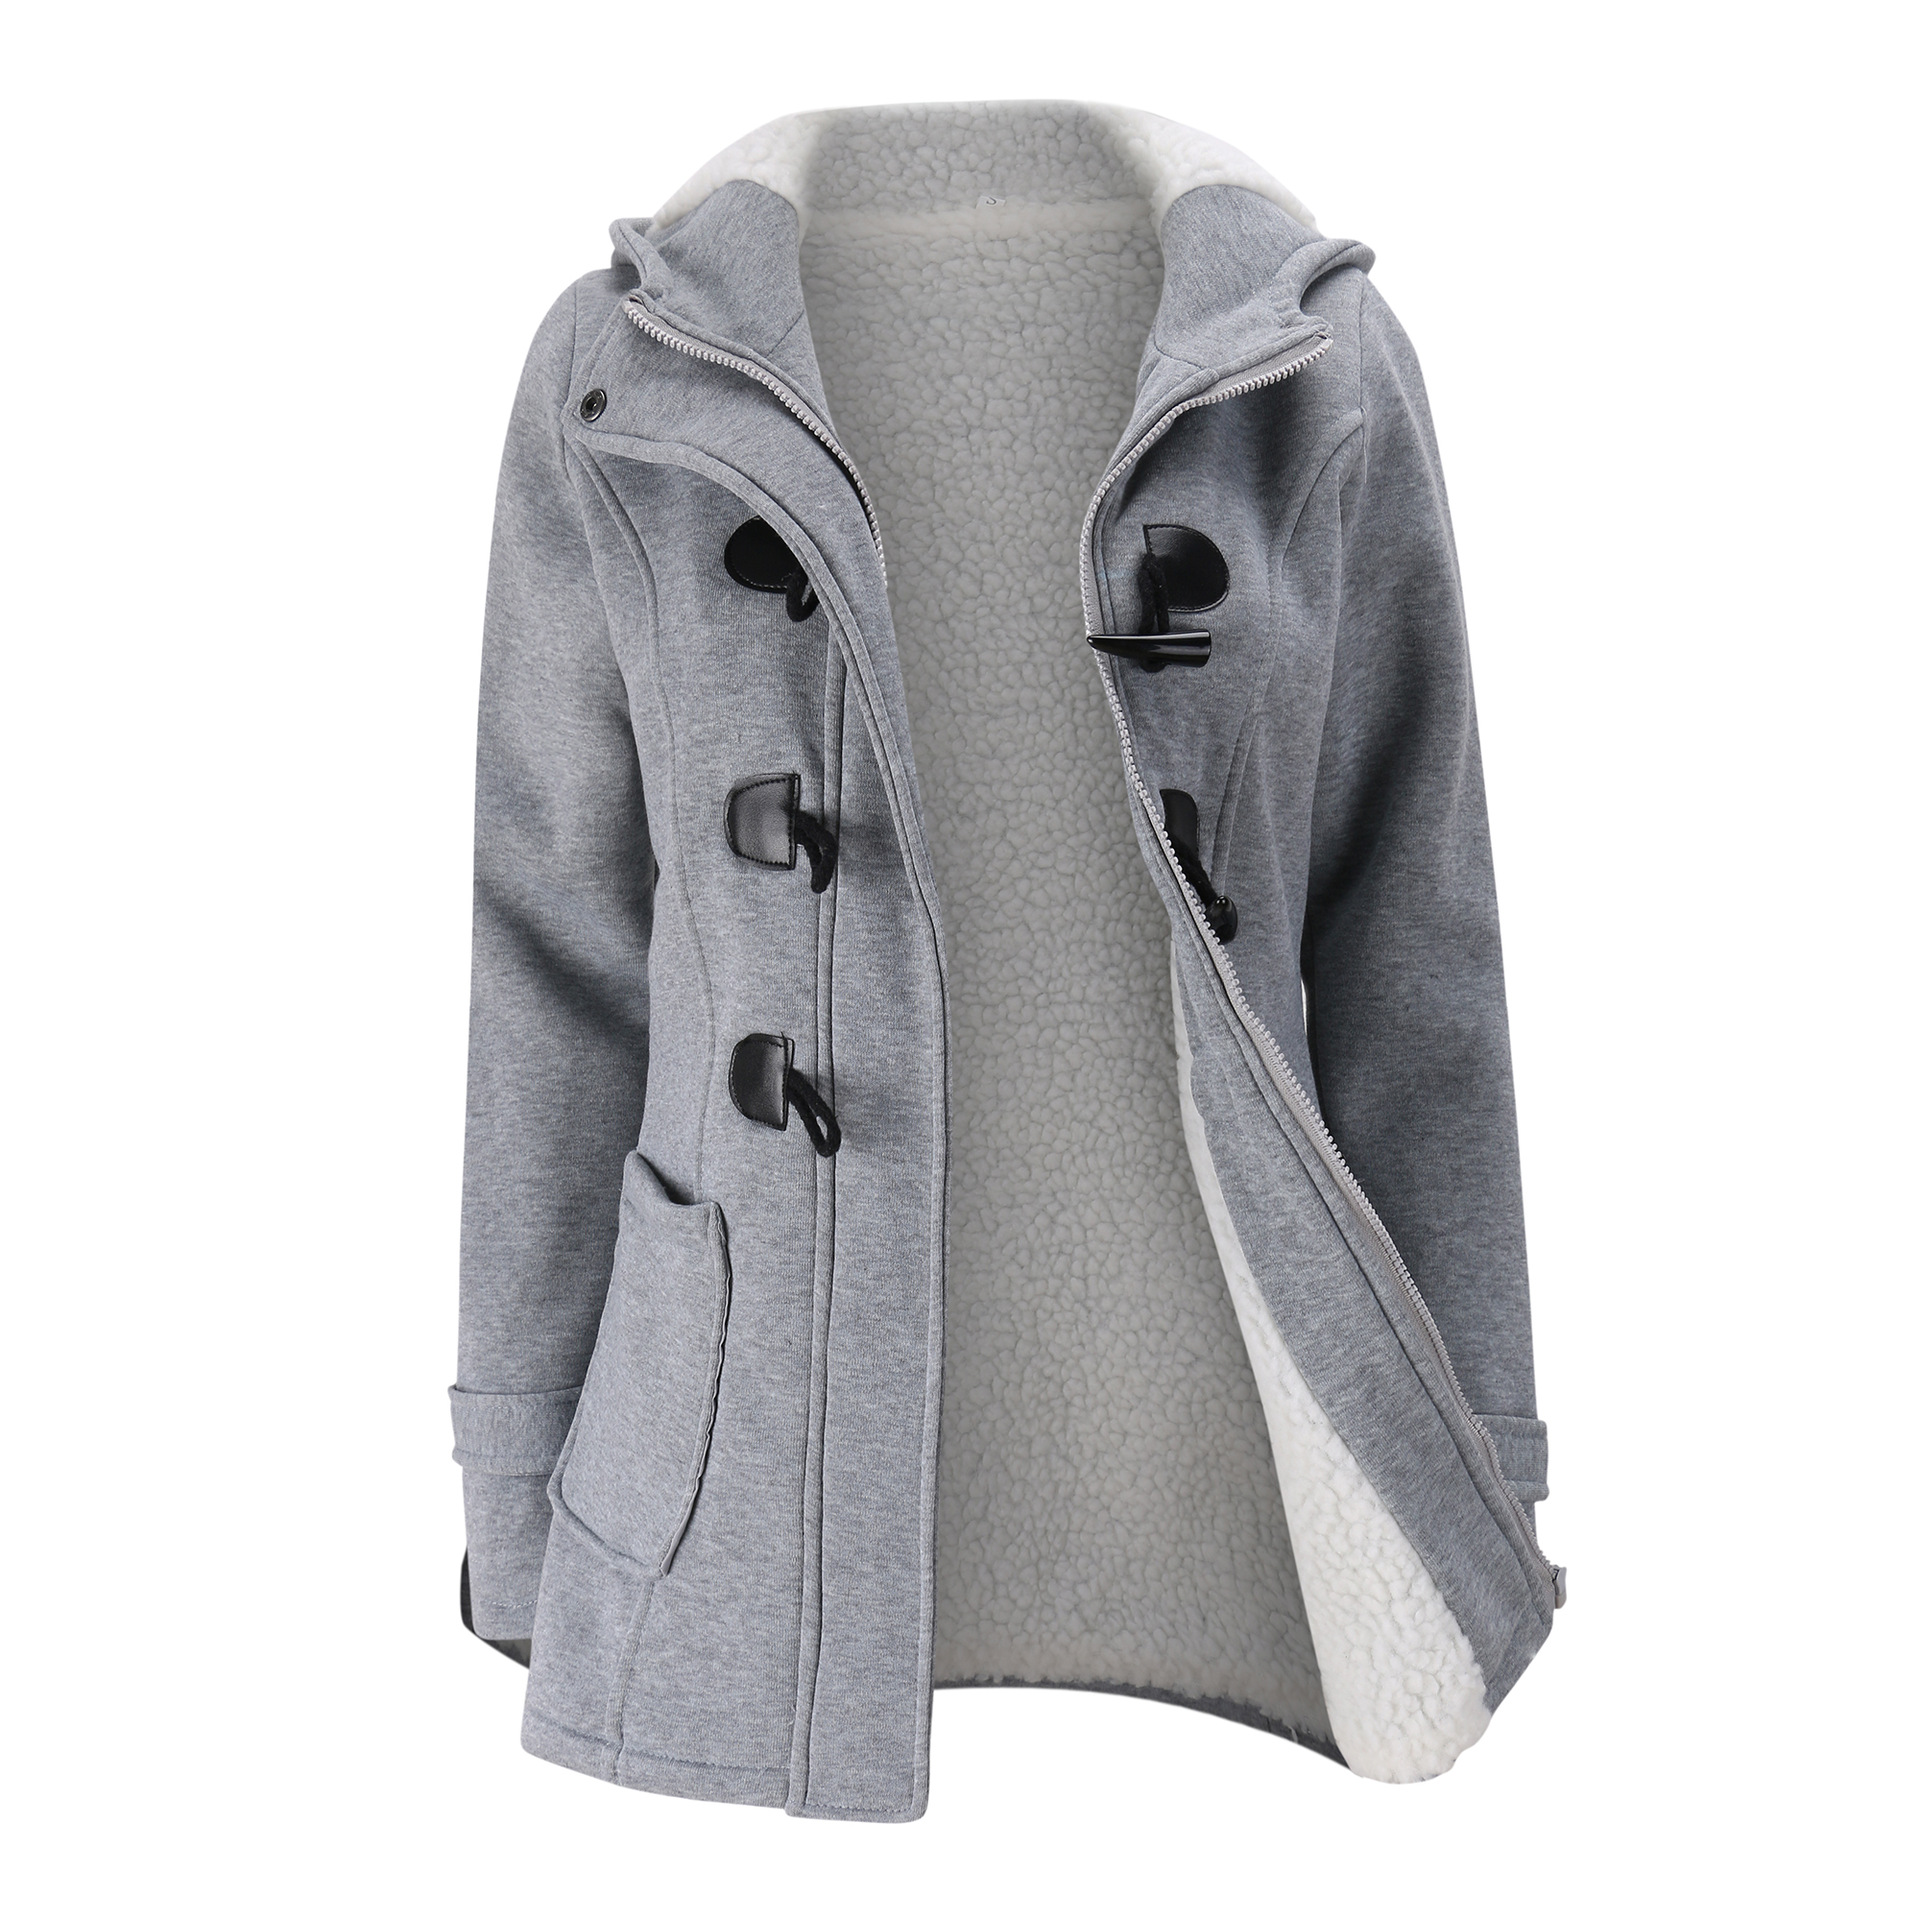 Hooded Winter Parka Women Thick Girl Oversized Snow Coat Cotton Jacket Fashion Long Overcoat Streetwear Female Solid Ladies Tops(China)